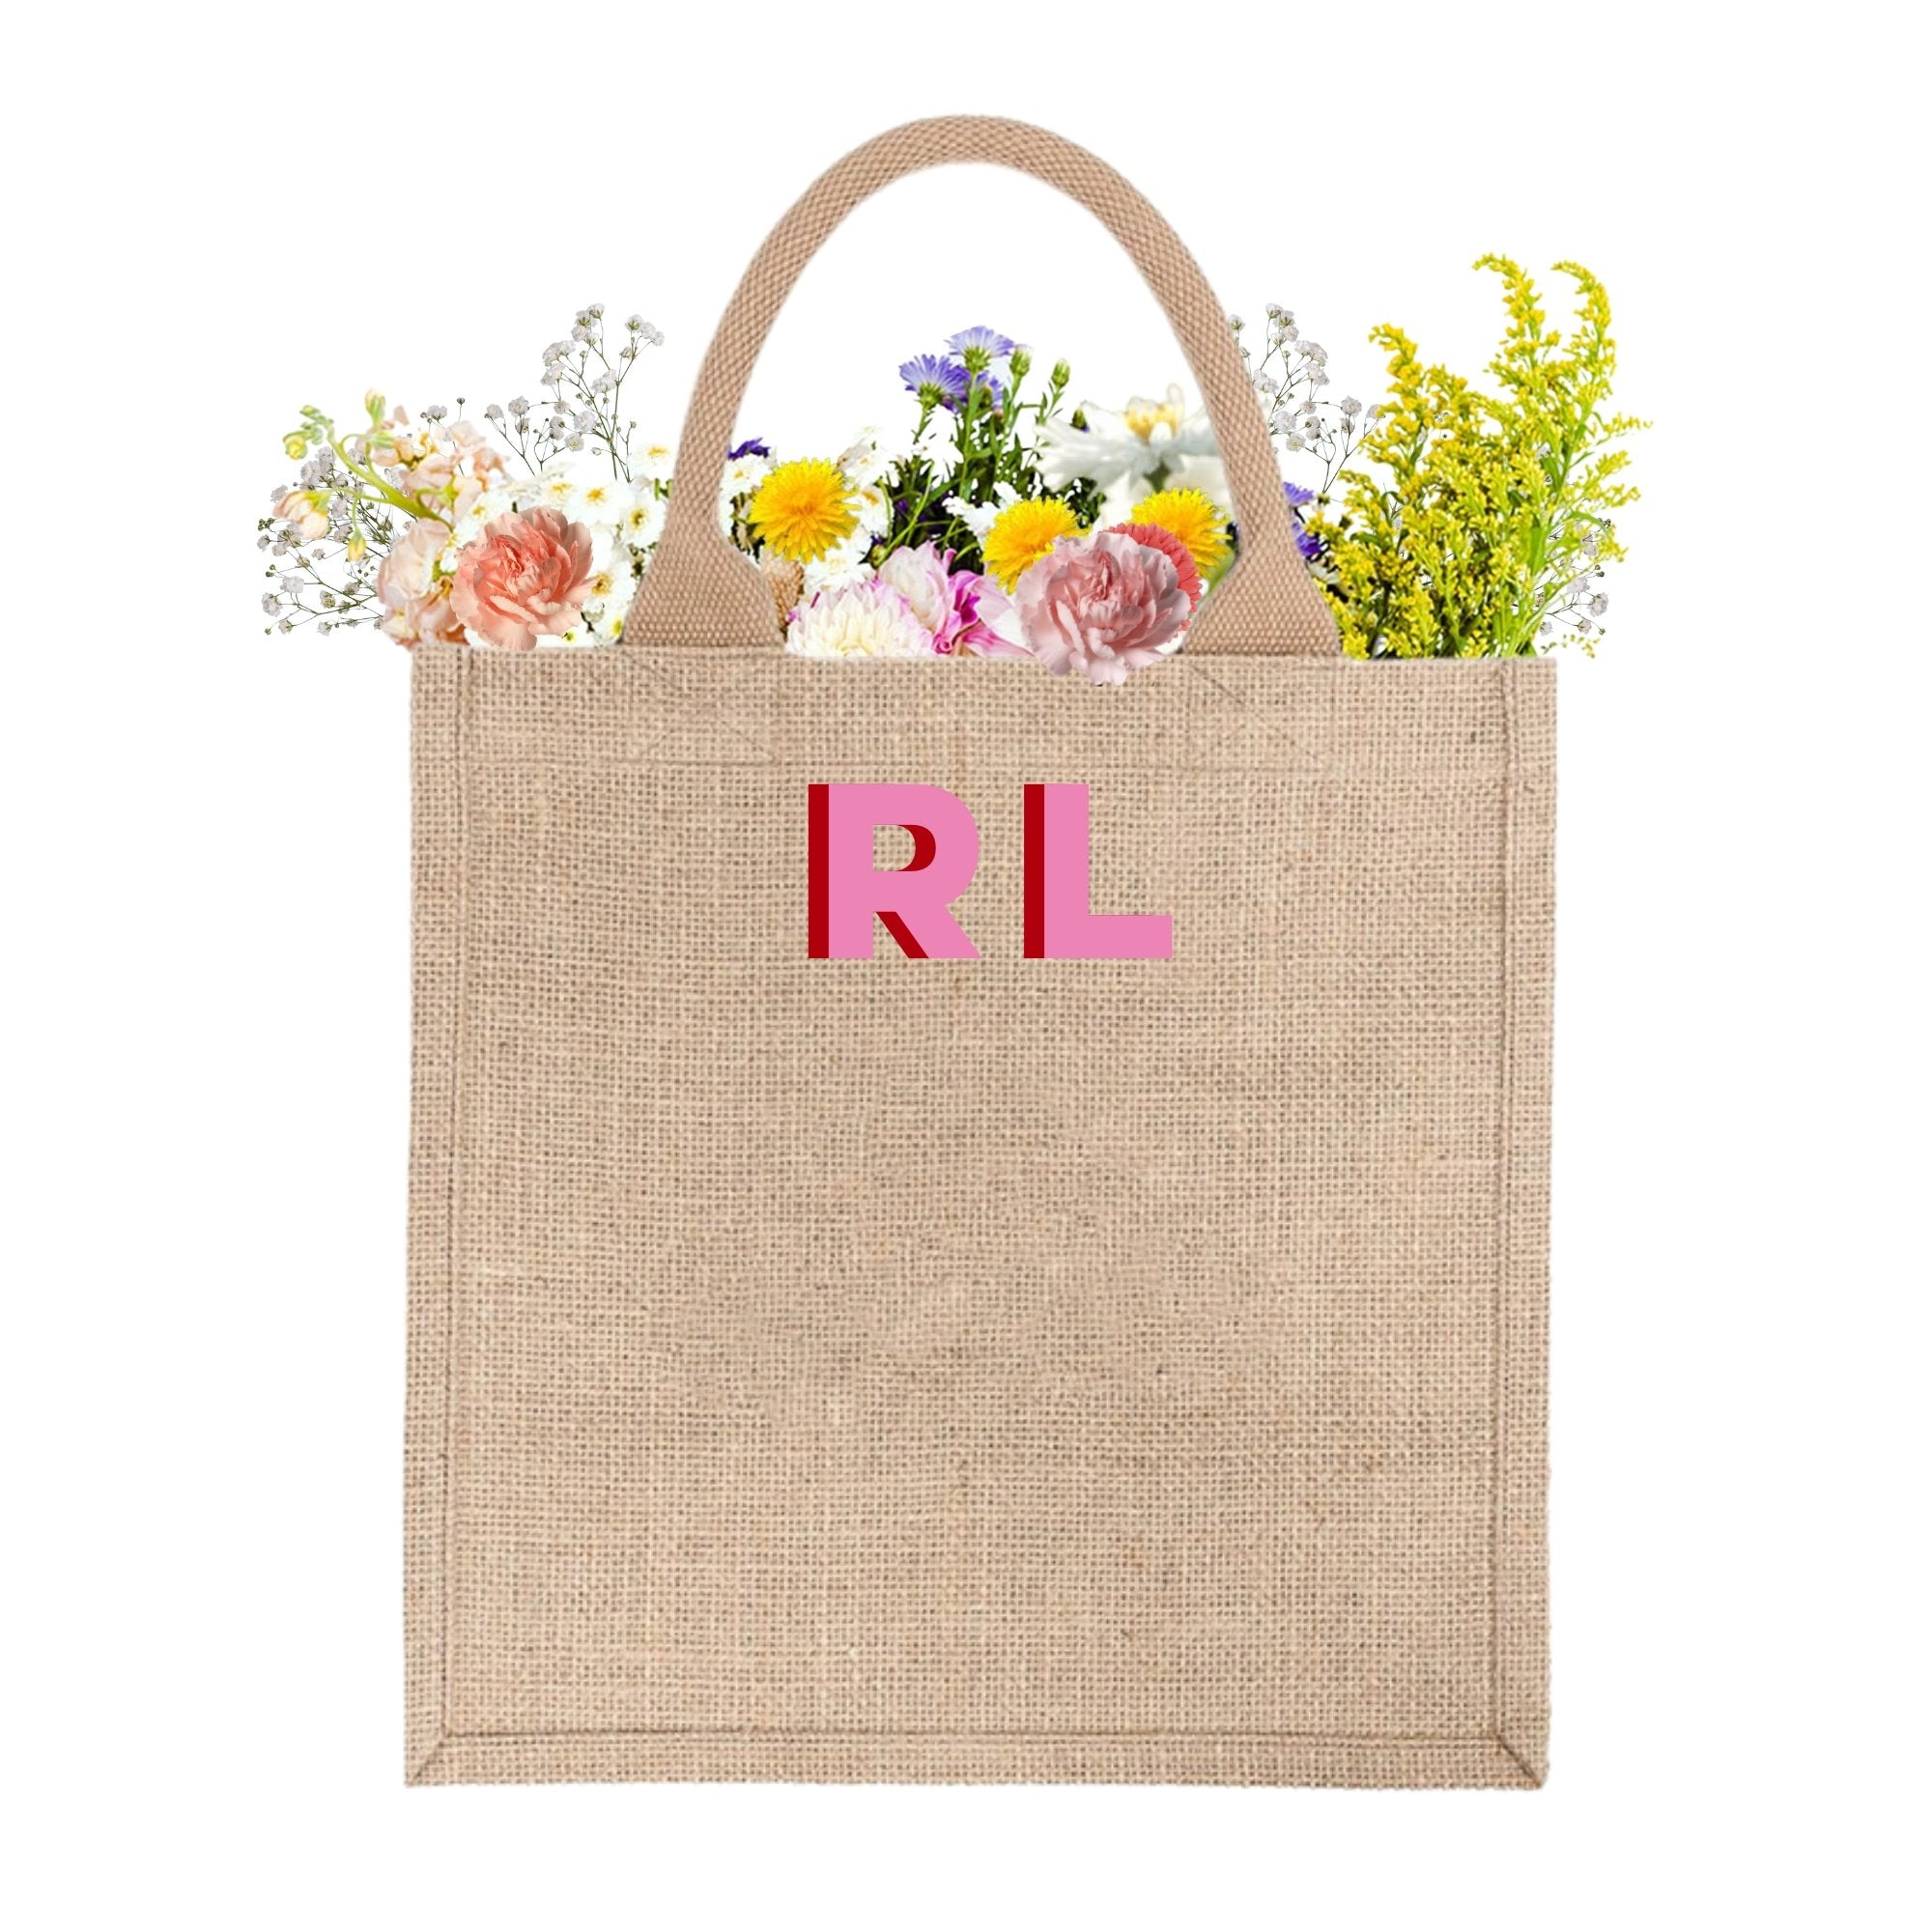 Monogram Welcome Bag - Sprinkled With Pink #bachelorette #custom #gifts